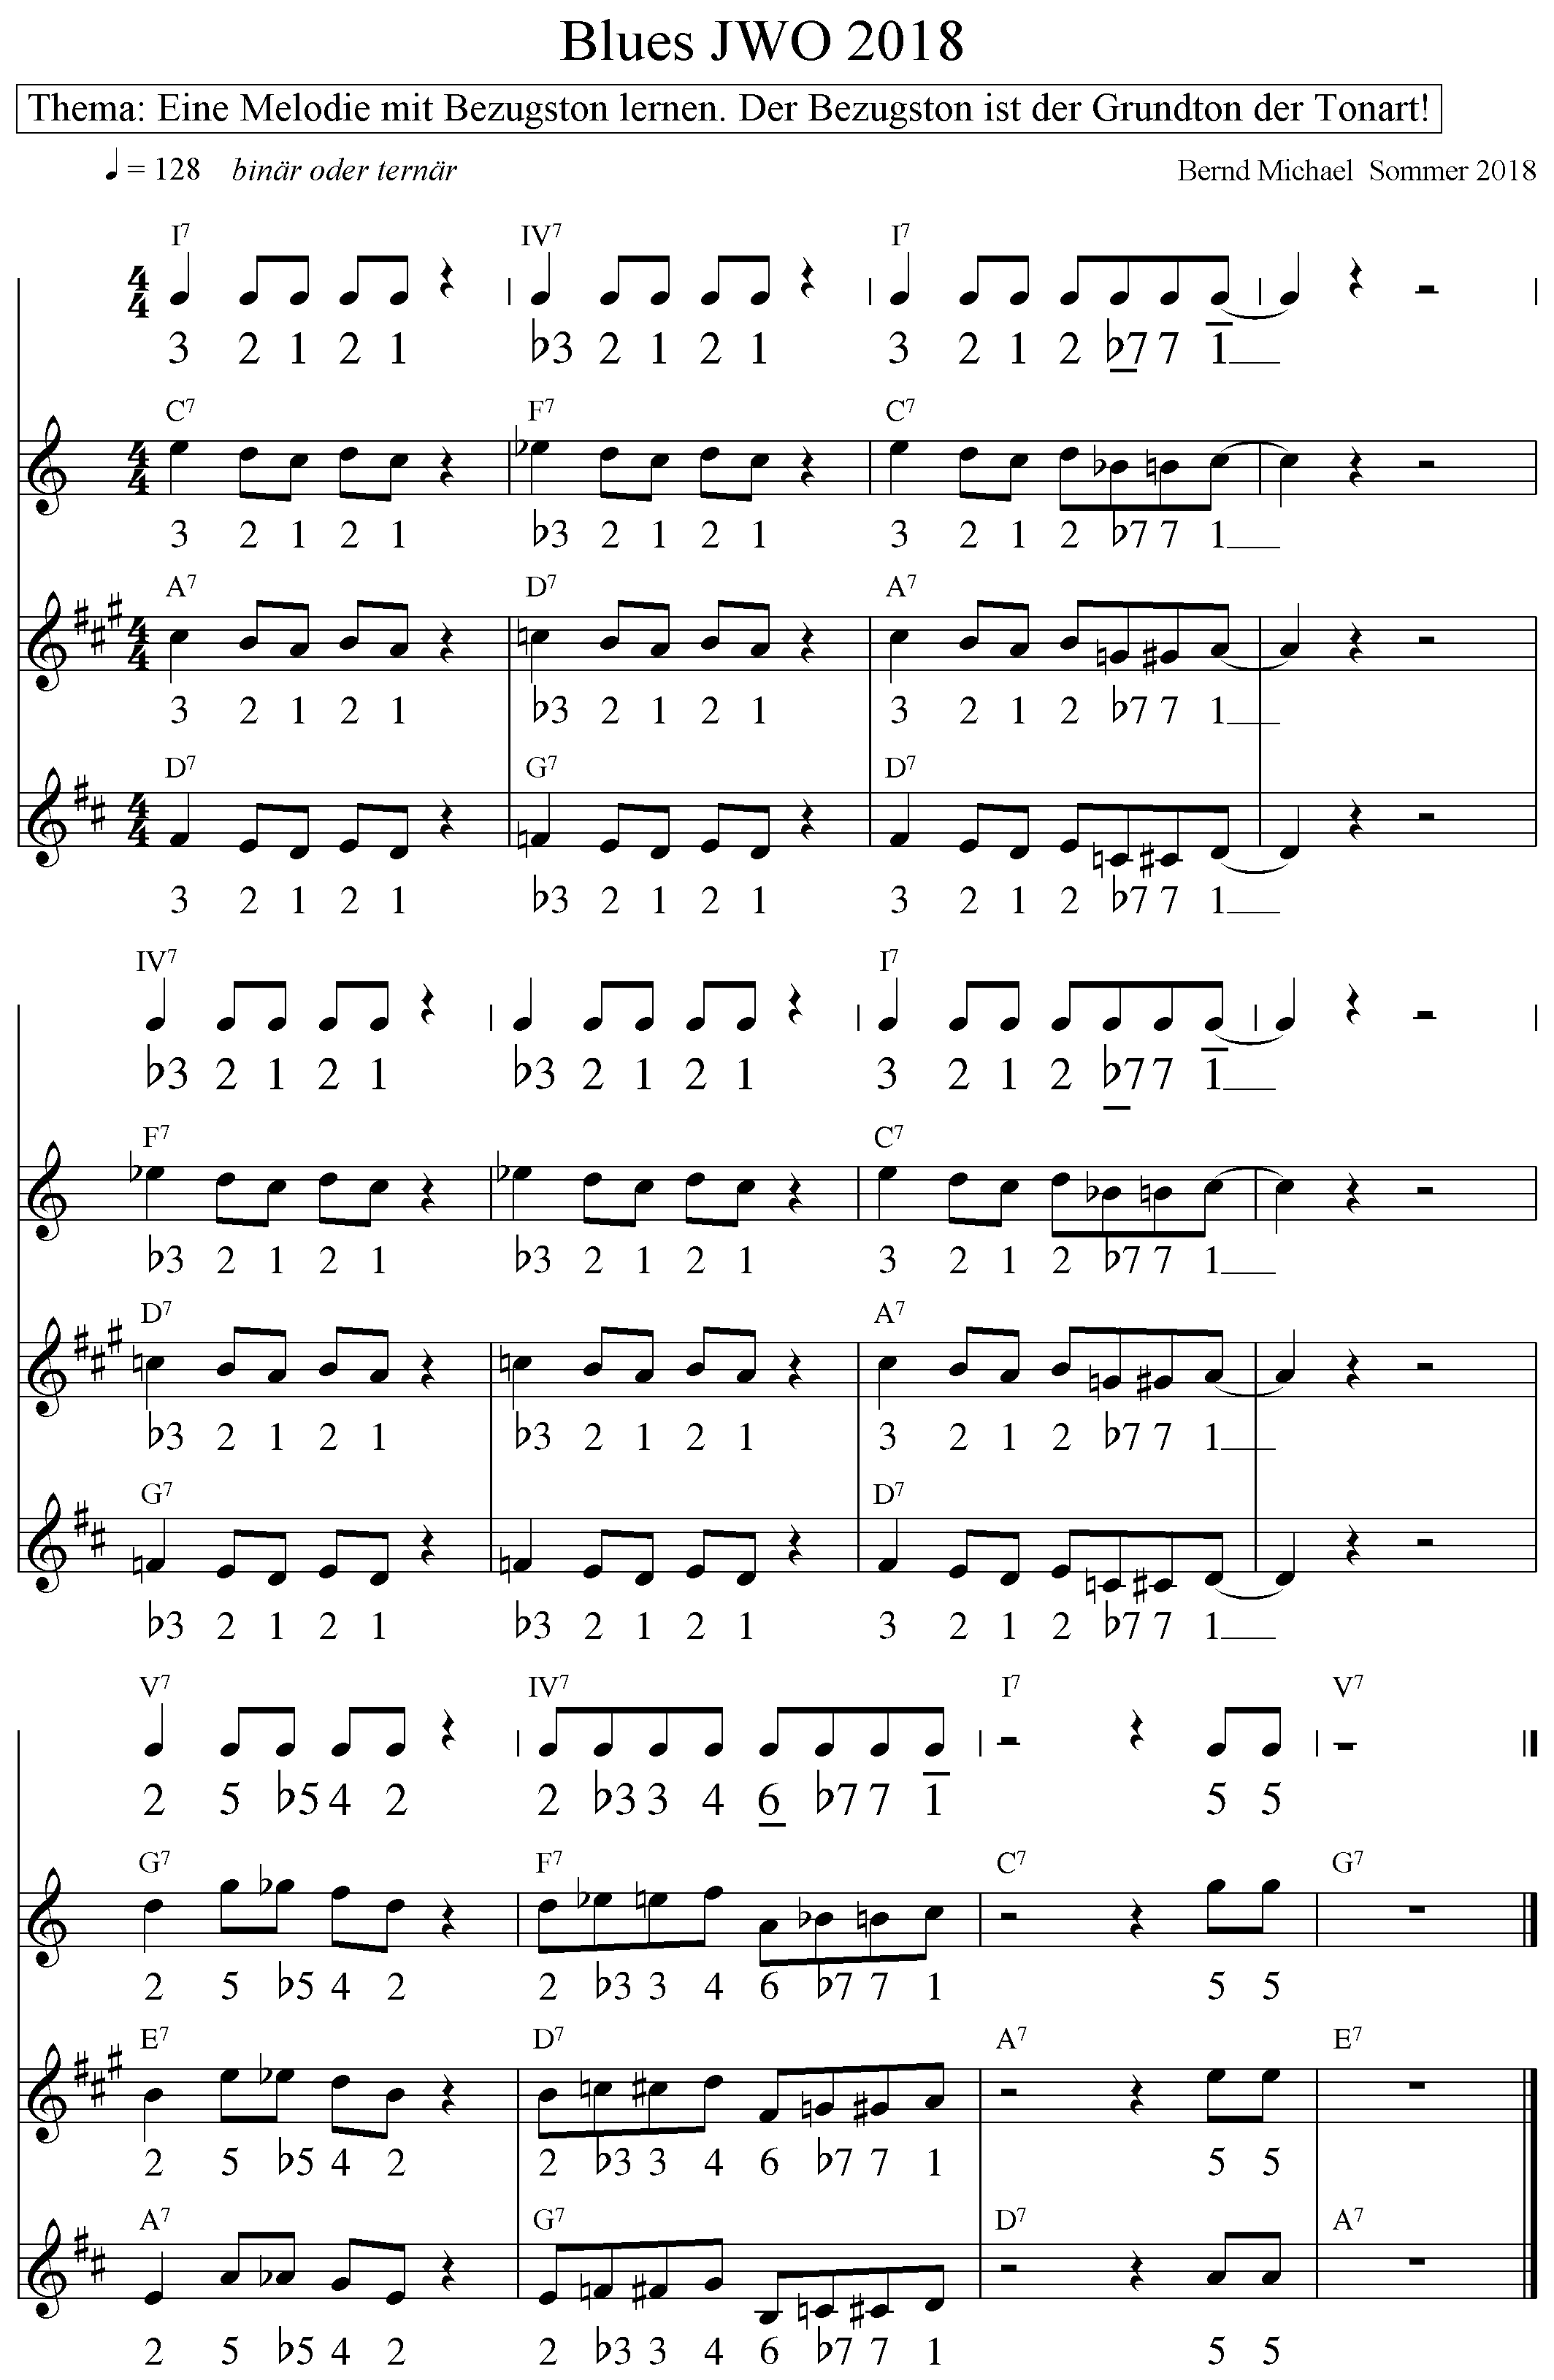 Blues Bleib Kuhl. Traditionelle Notation mit Transpositionen für B- und Es-Instrumente.